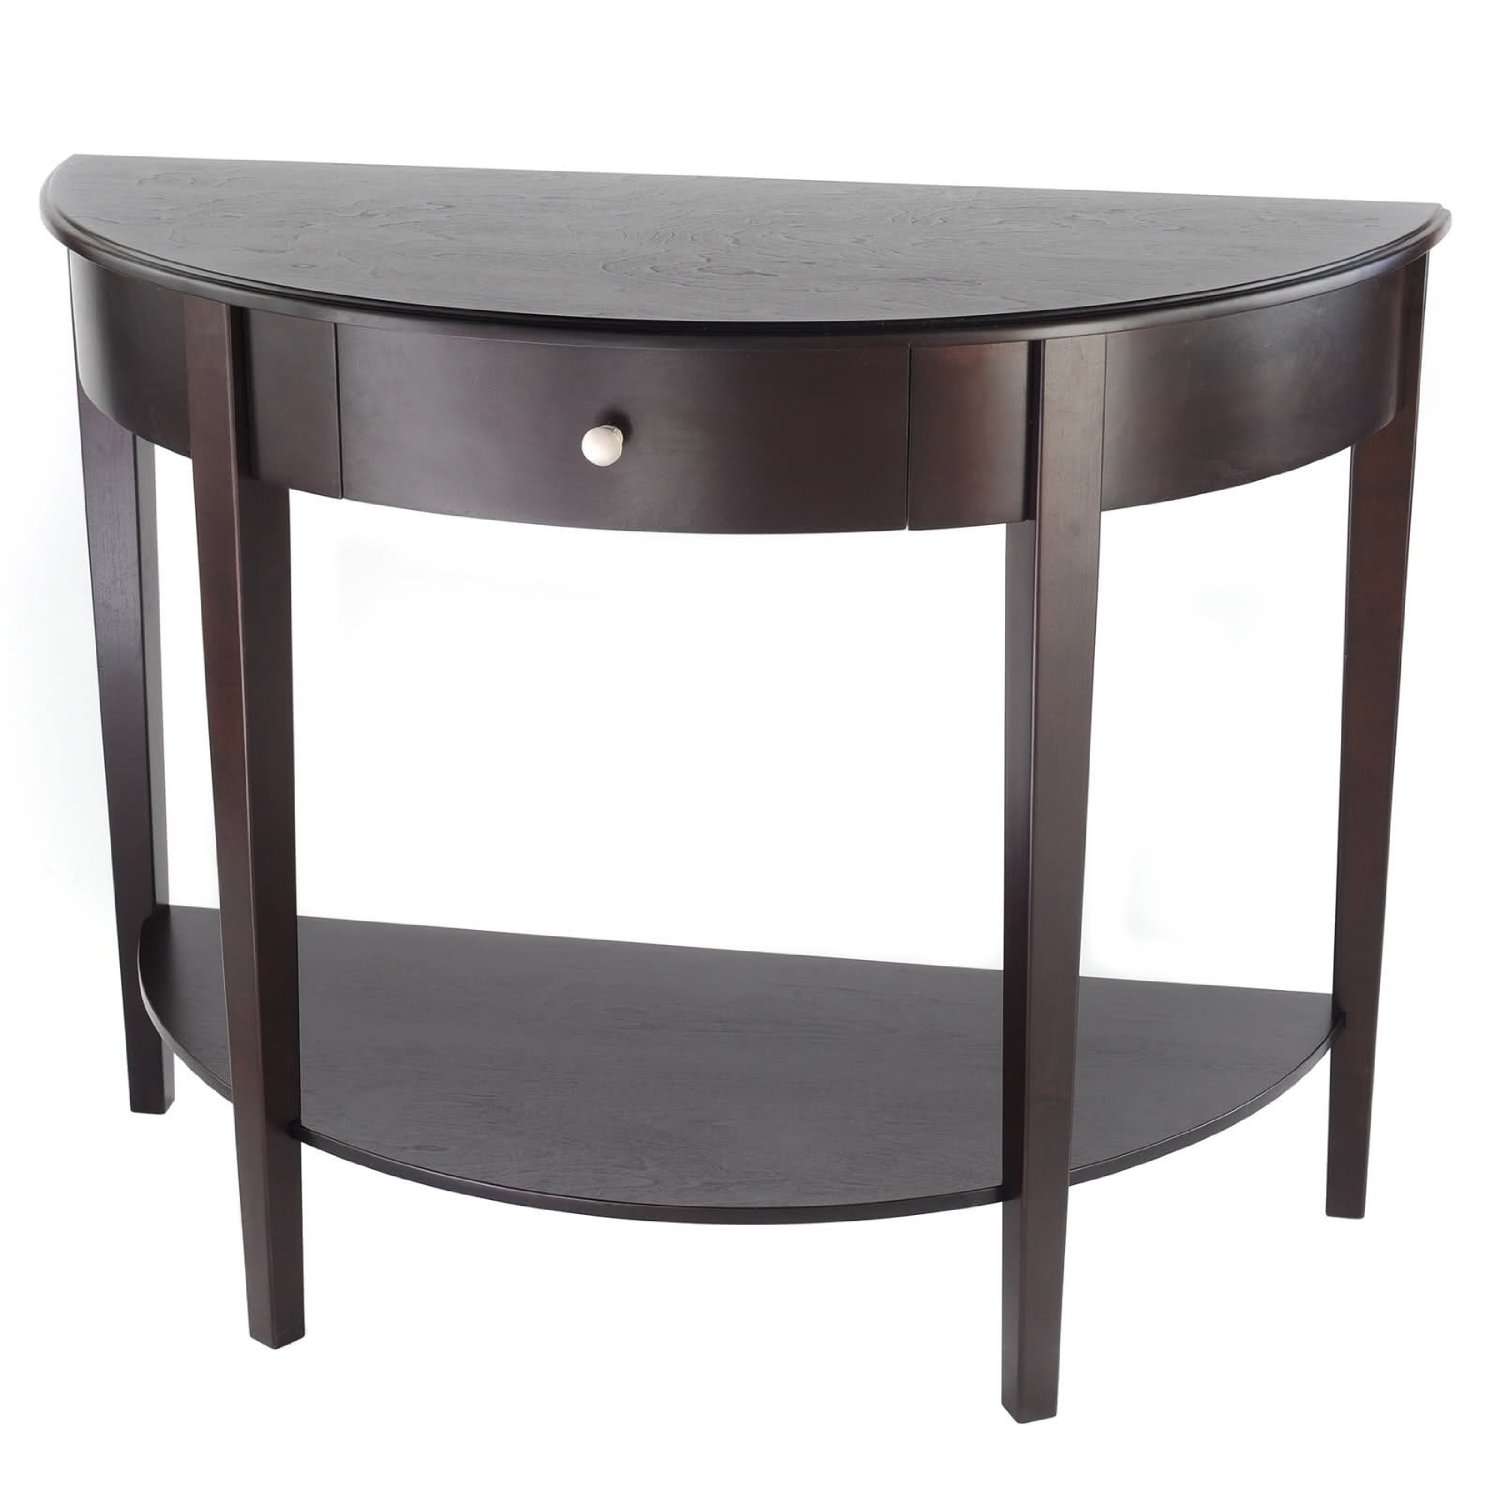 Get Quotations Bay S Collection Large Half Moon Round Hall Table With Drawer Espresso